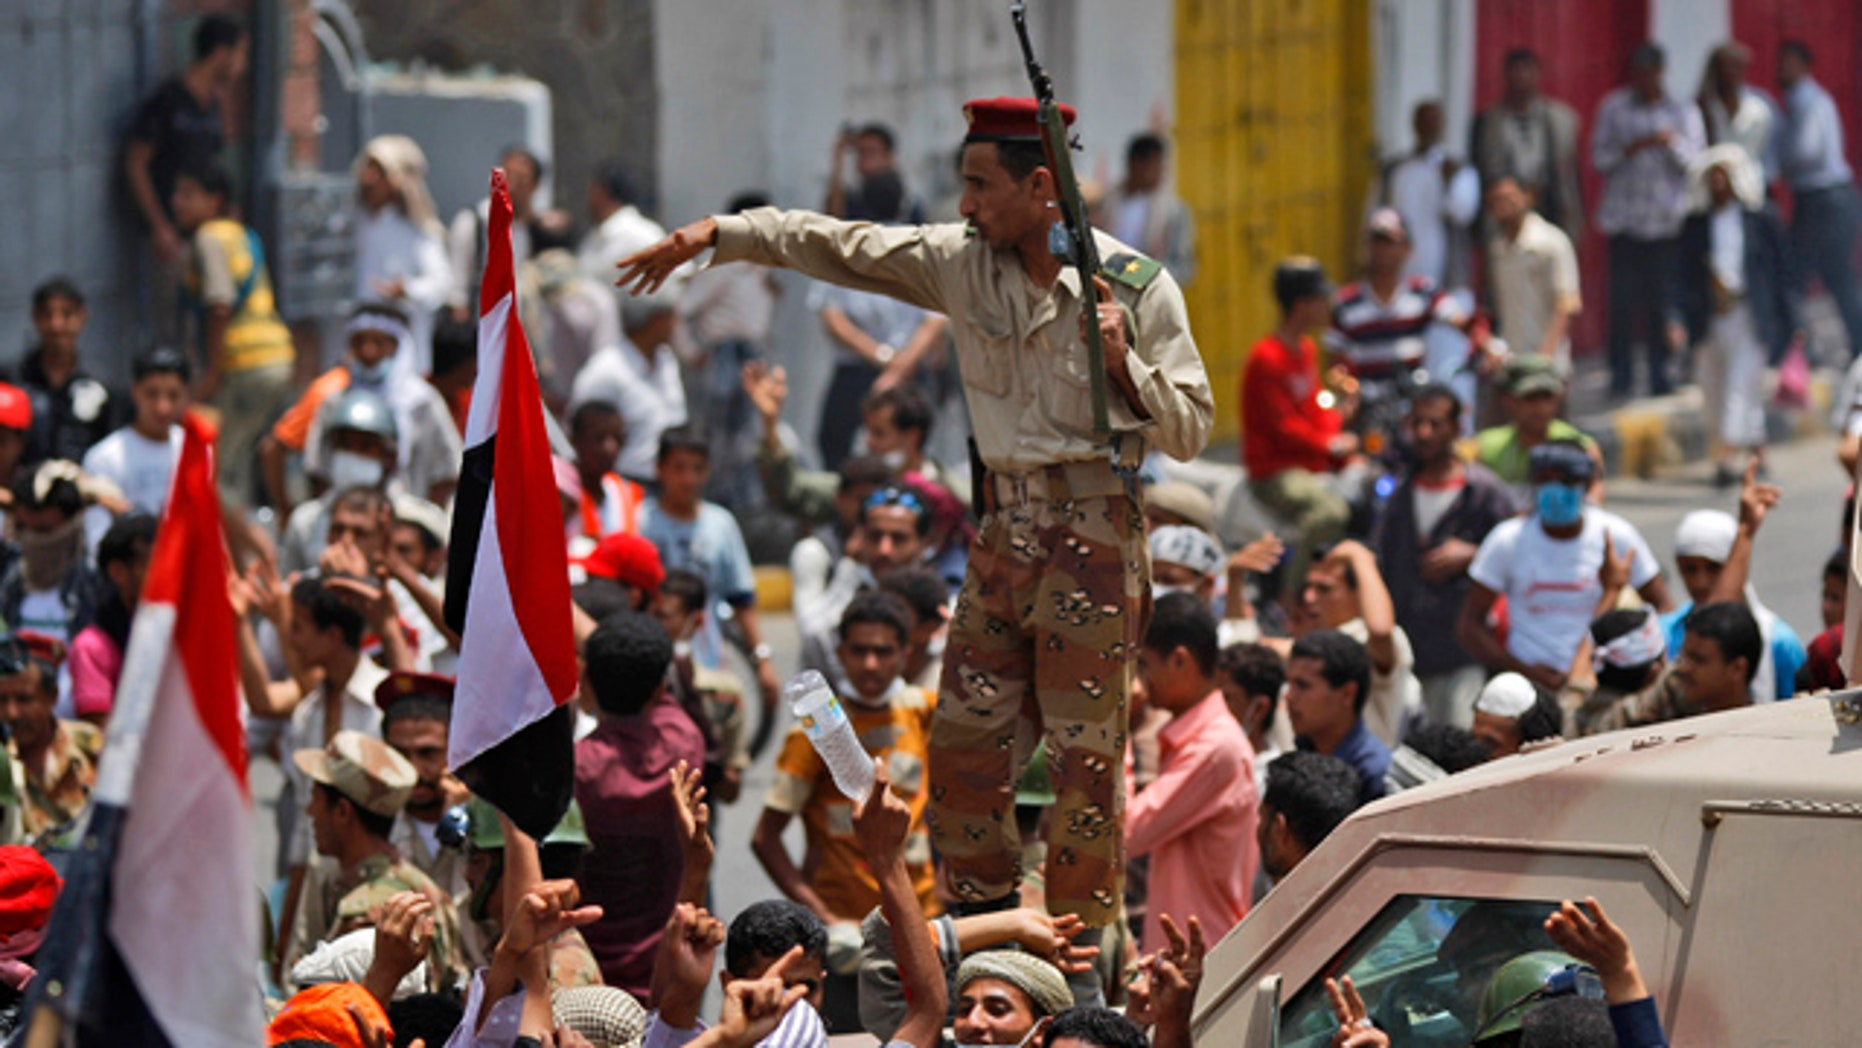 April 7: A Yemeni army officer gestures to anti-government protesters attending  a demonstration demanding the resignation of Yemeni President Ali Abdullah Saleh in Taiz, Yemen.